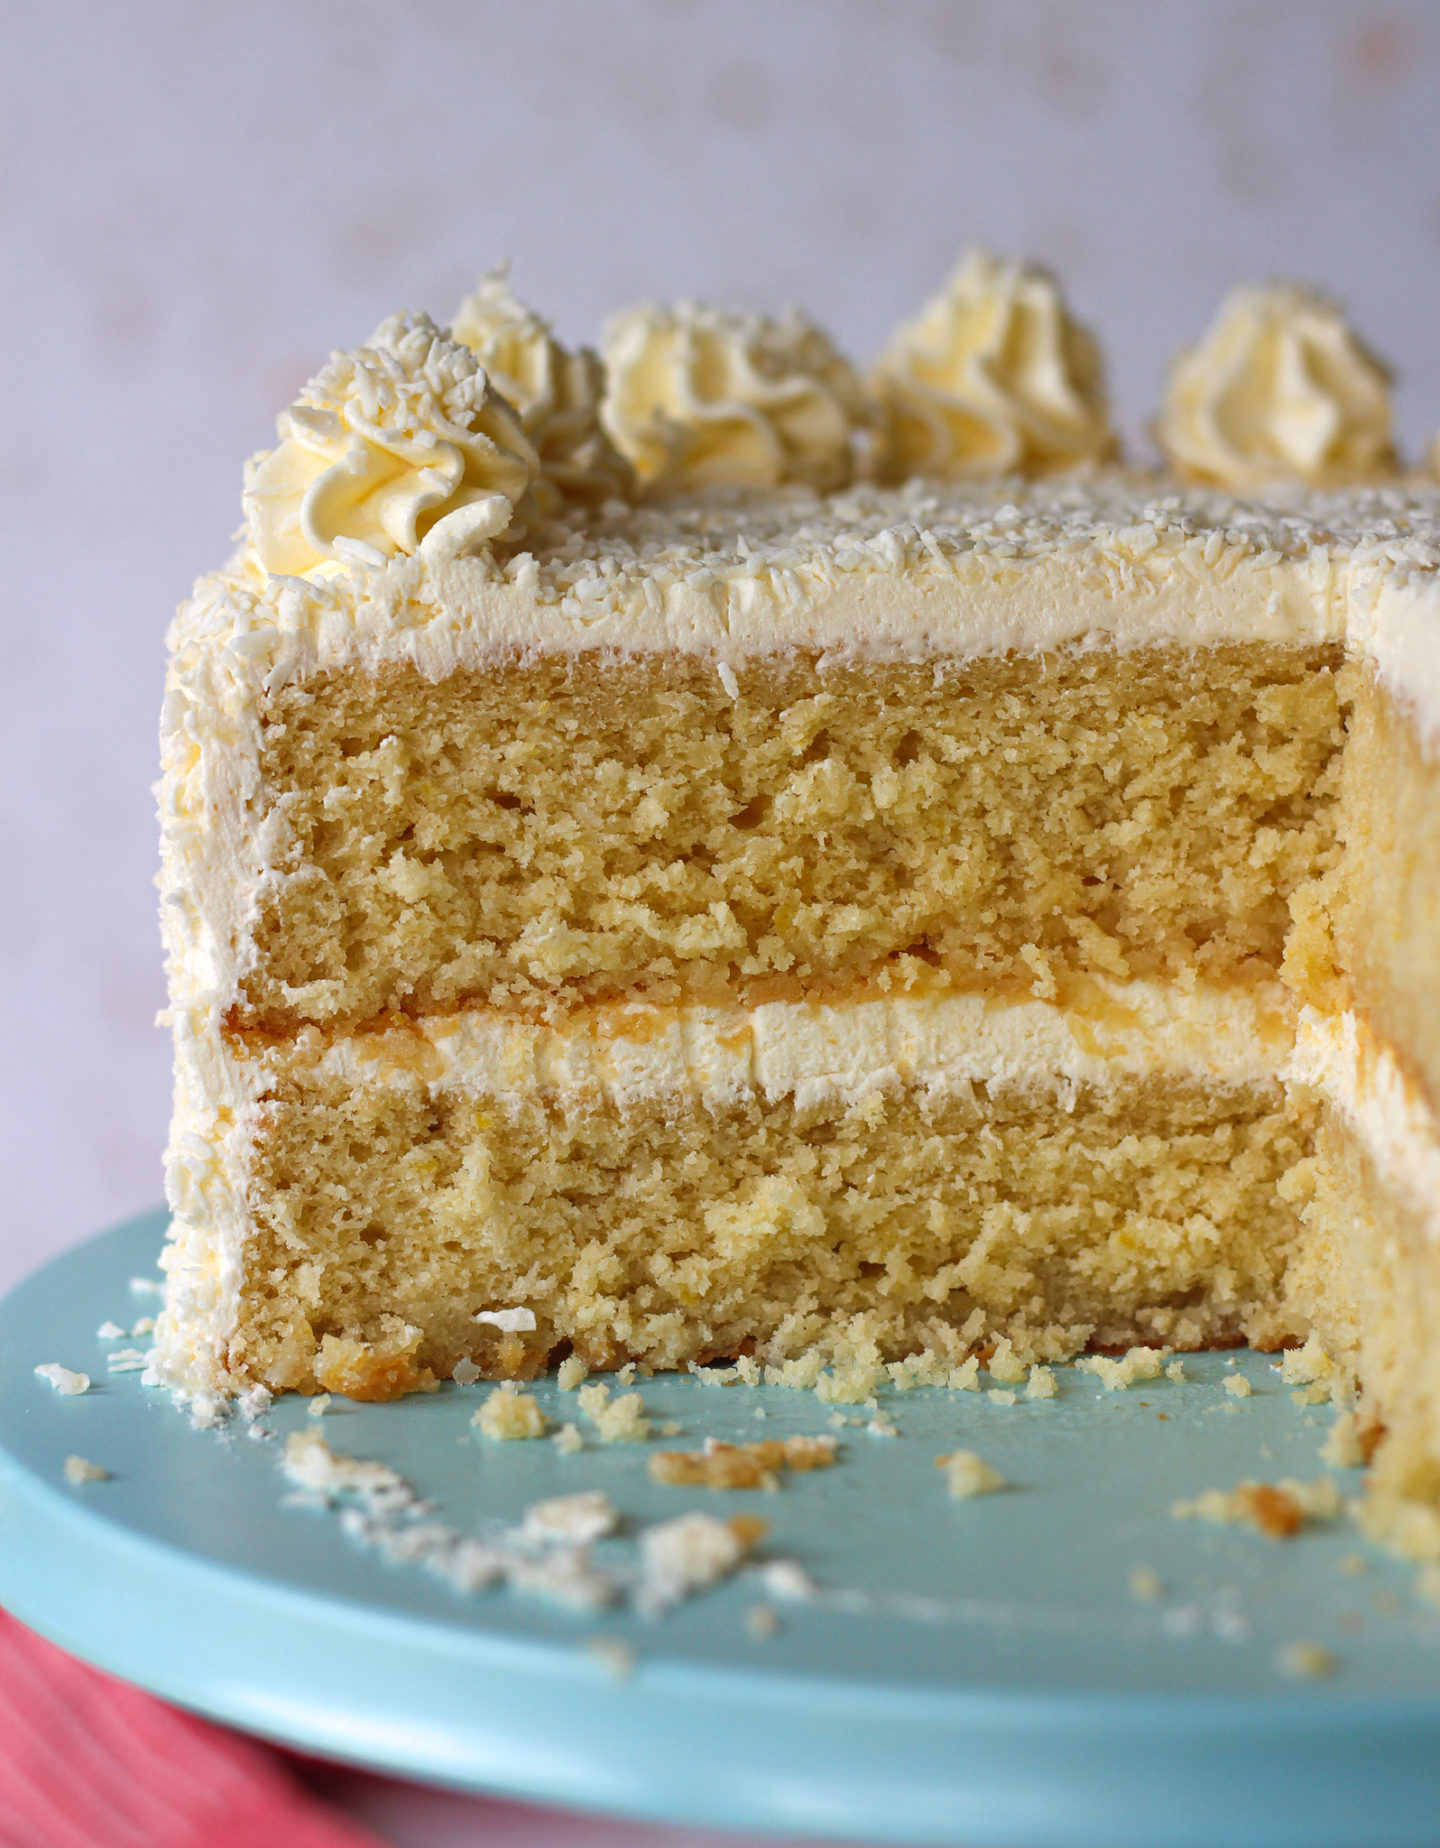 close up of inside of sliced lemon coconut layer cake, showing the cake texture